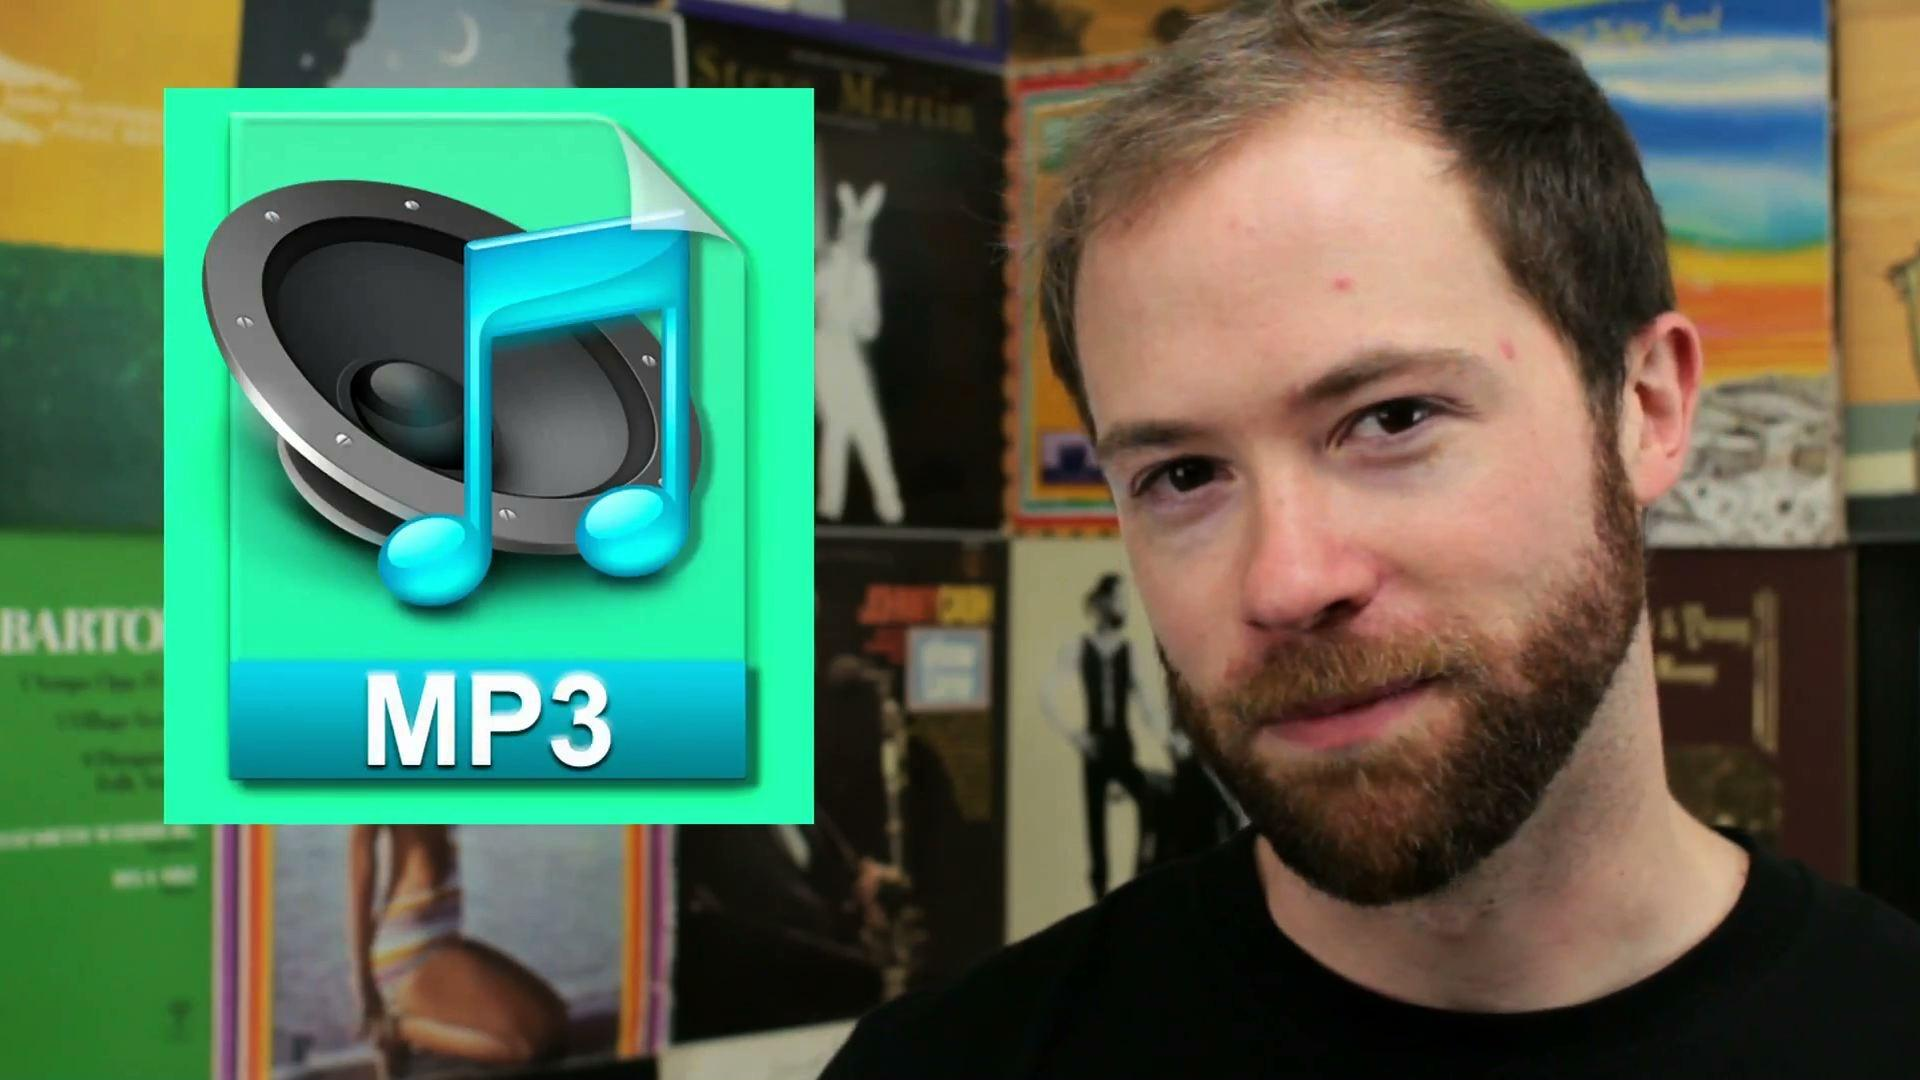 What do MP3s and Magic Spells Have in Common? image